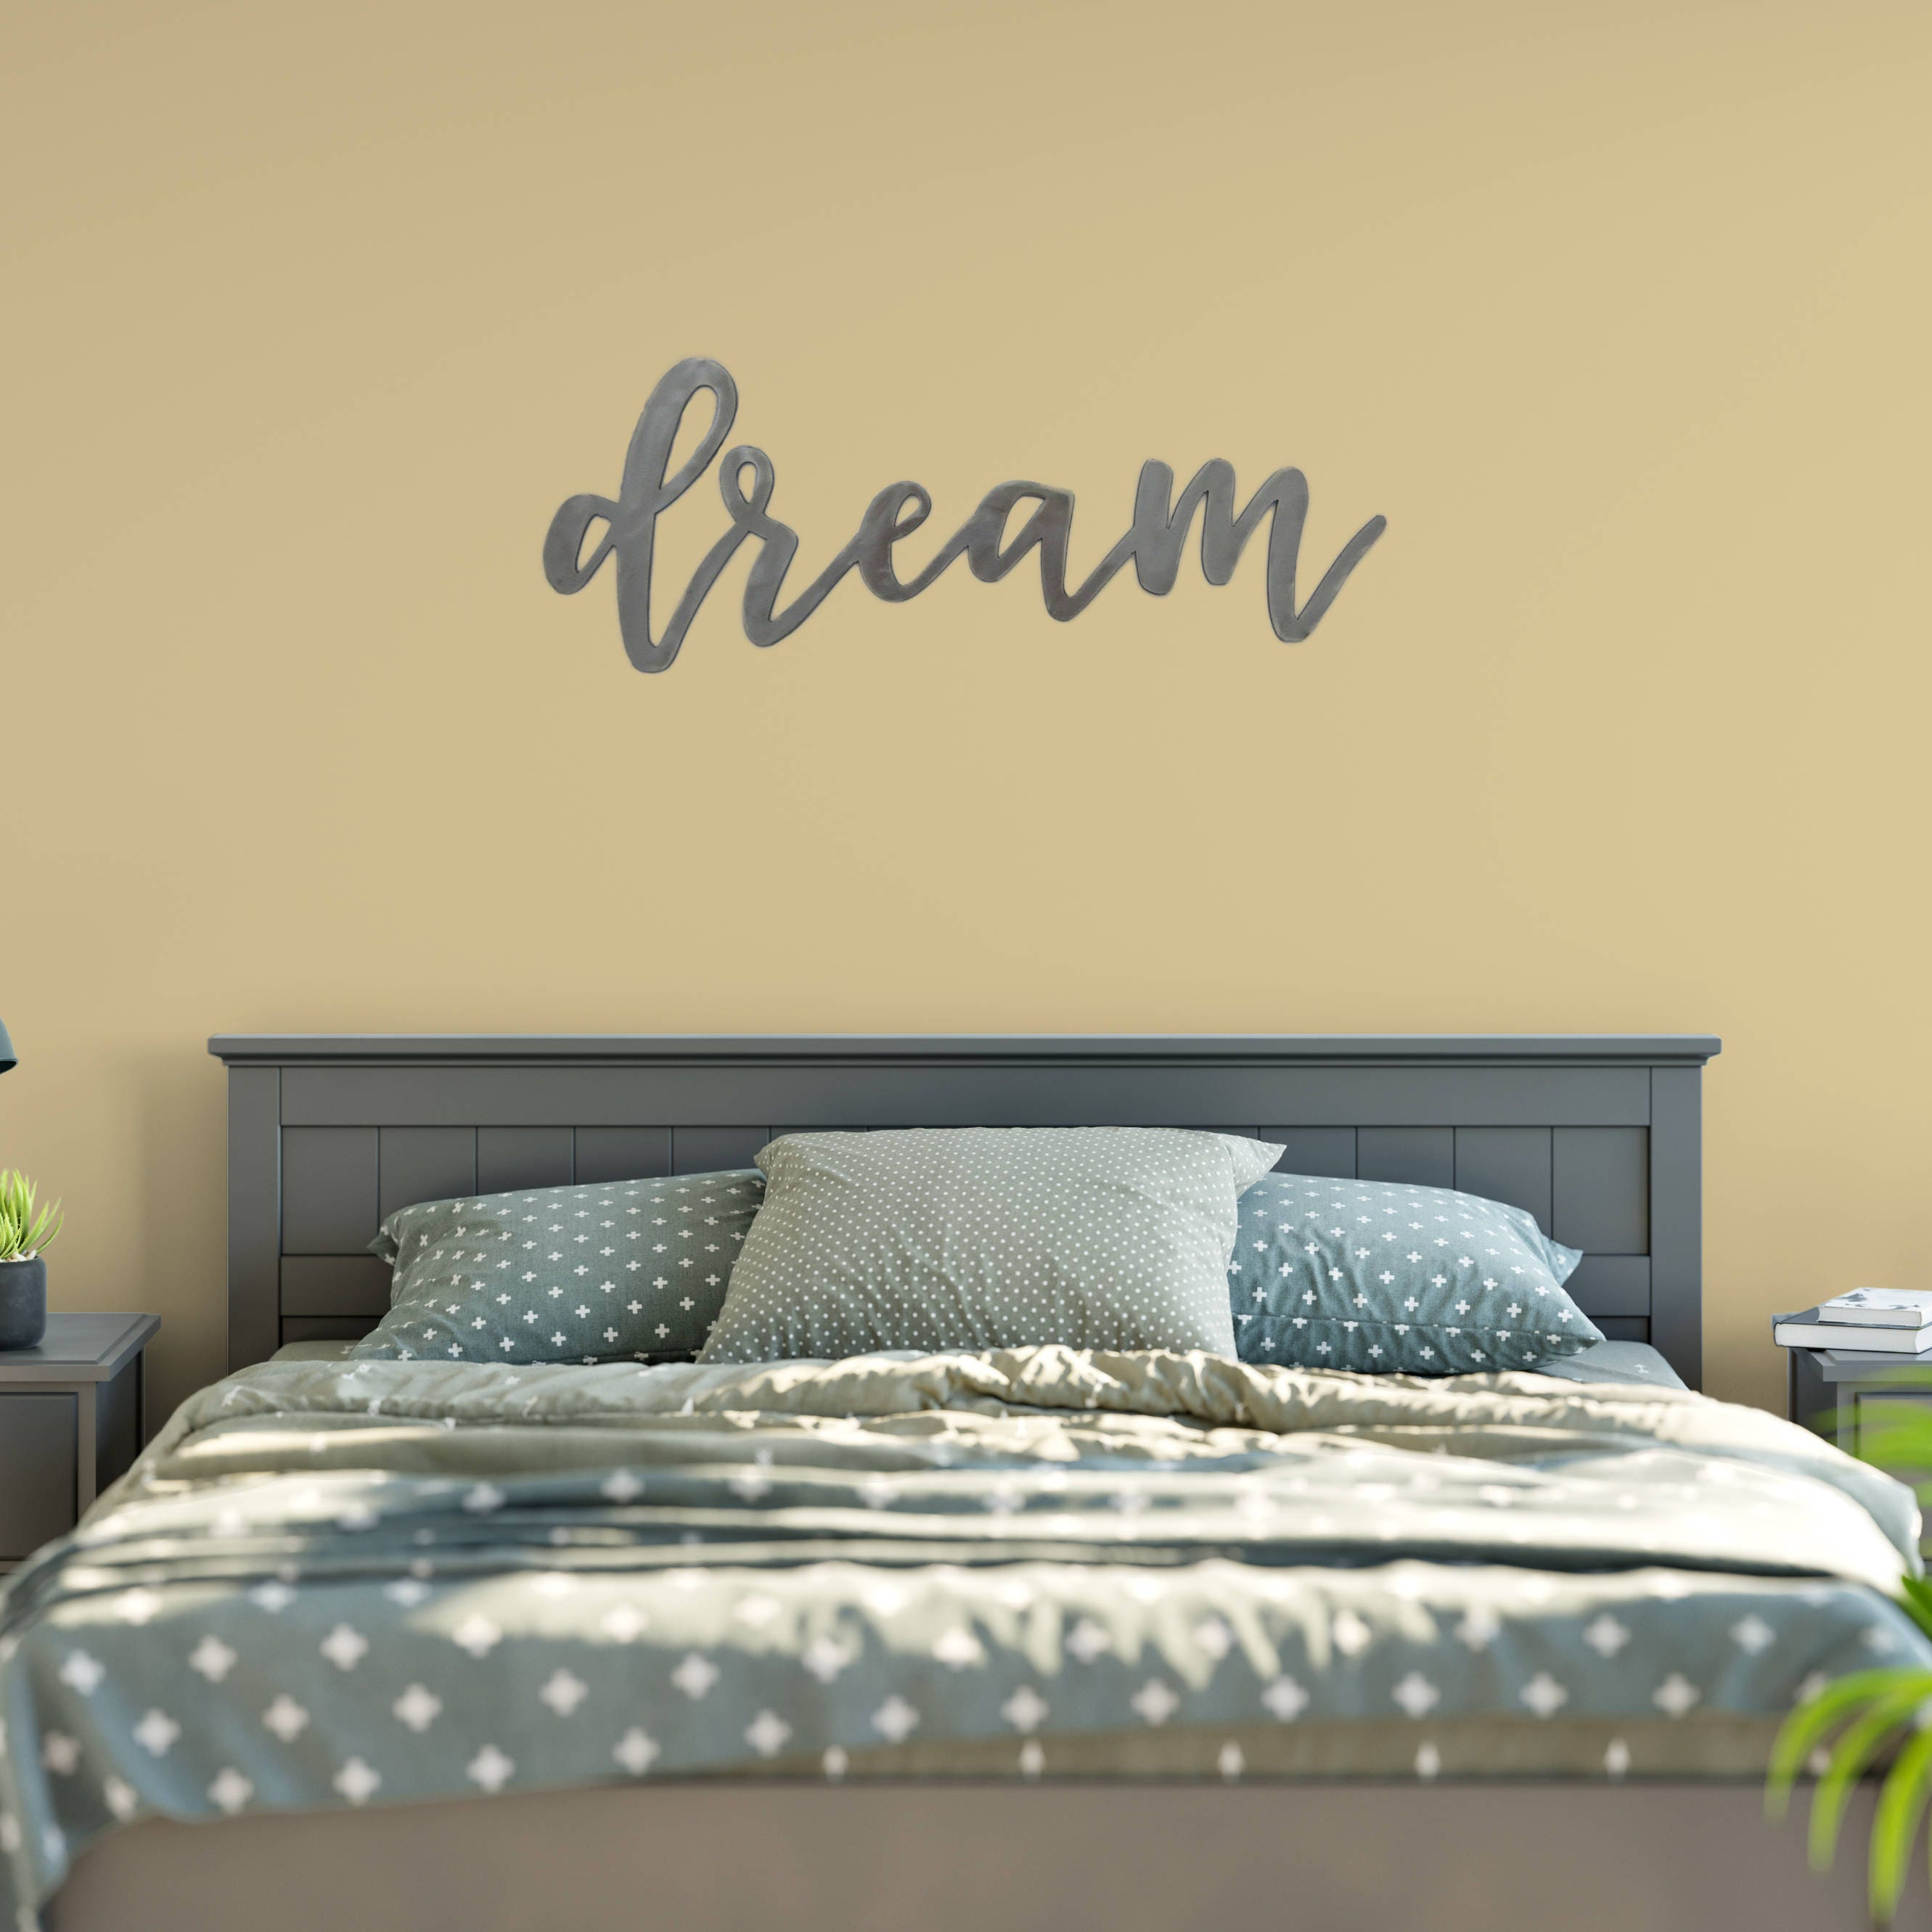 Colorful Dream Wall Art Photos - The Wall Art Decorations ...